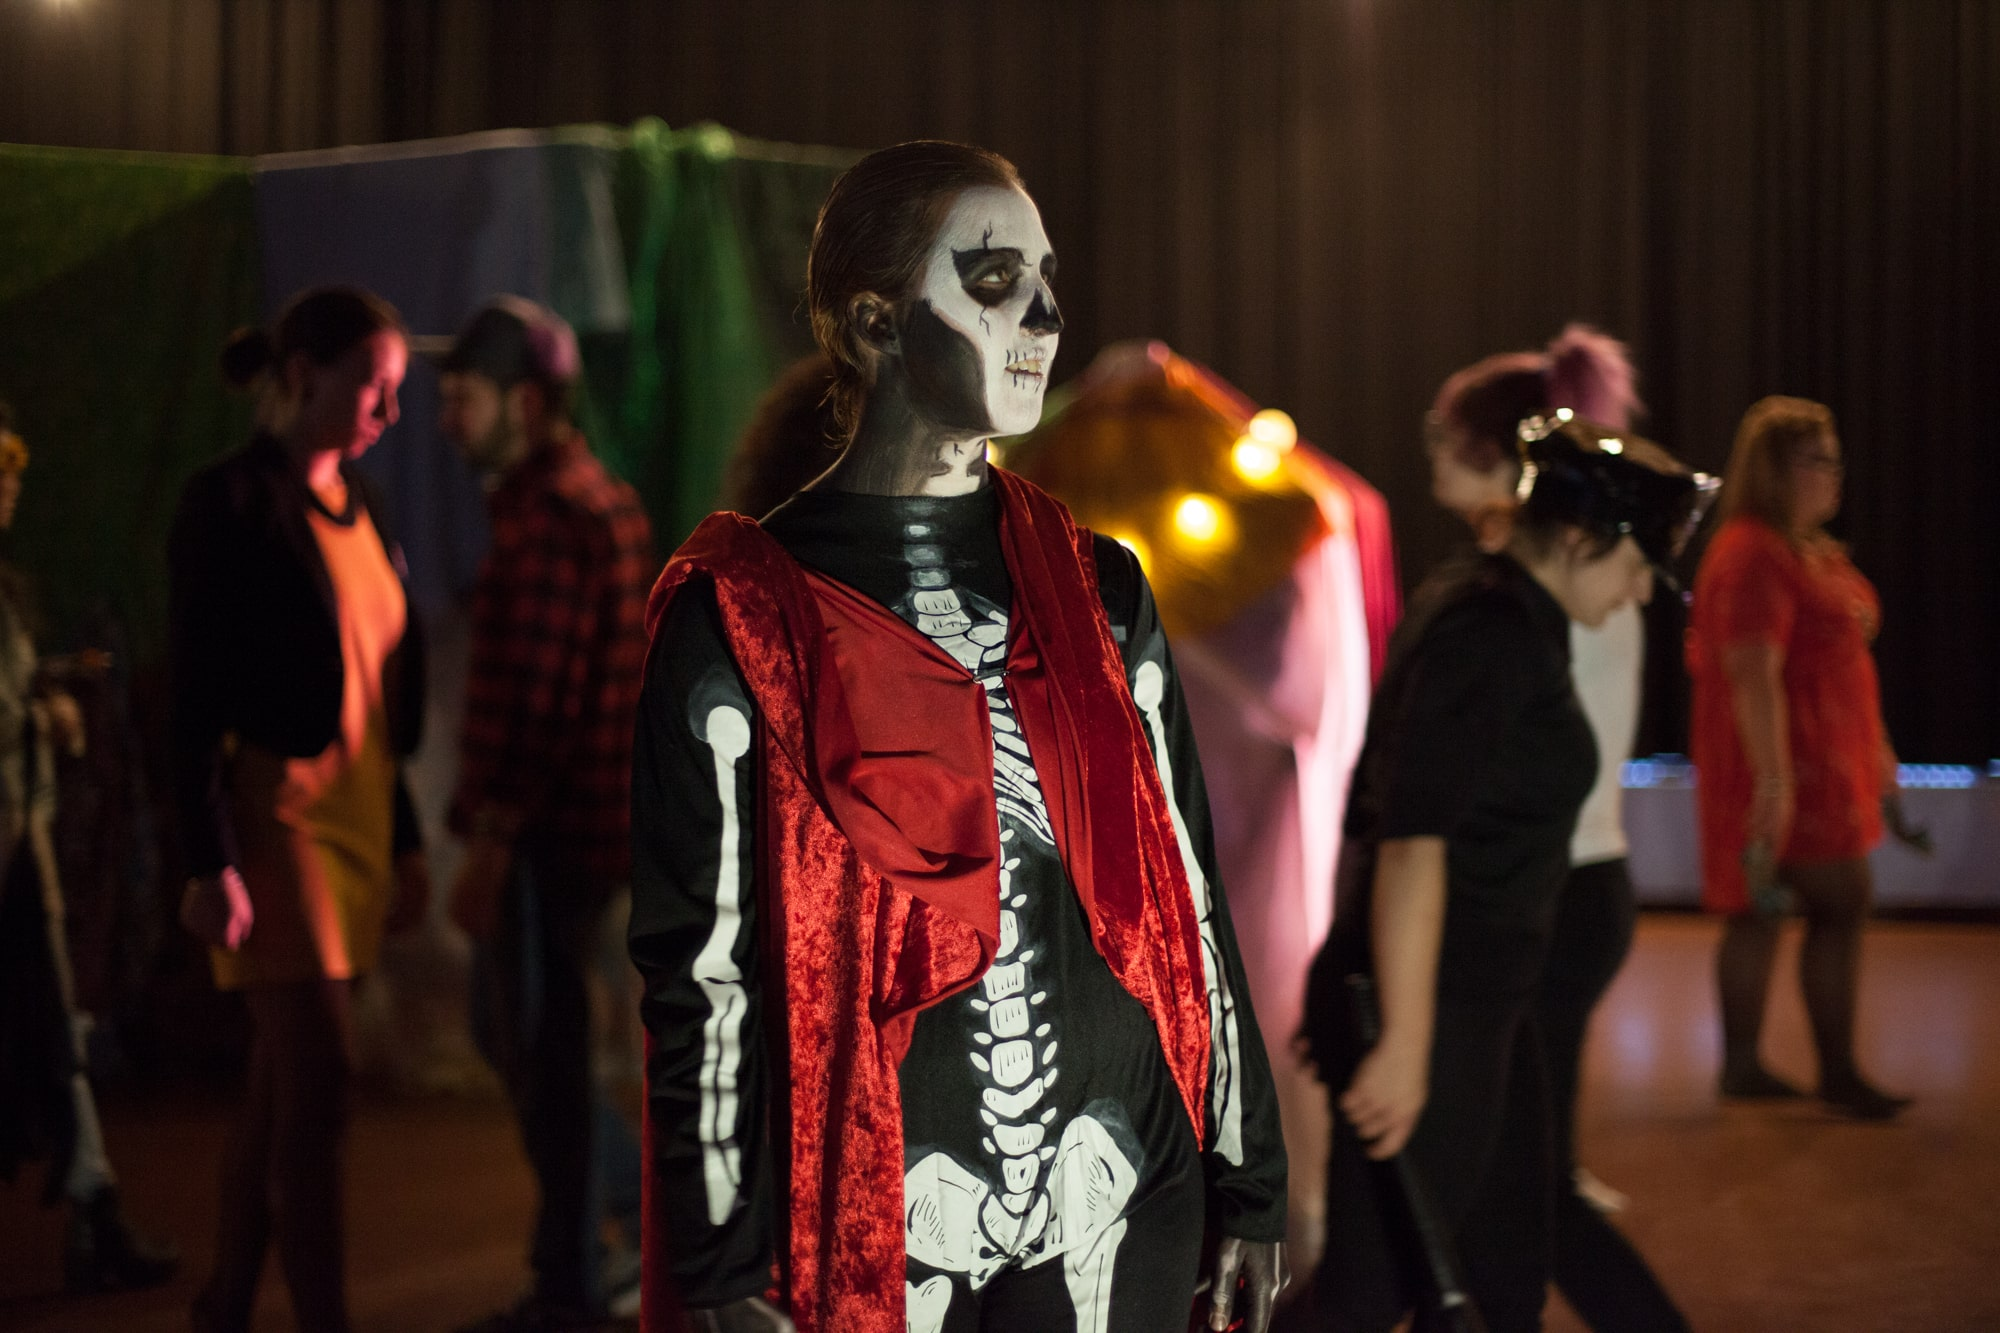 Act Attack theatre class actors performing. Woman with dark long hair dressed in a skeleton costume and red cape